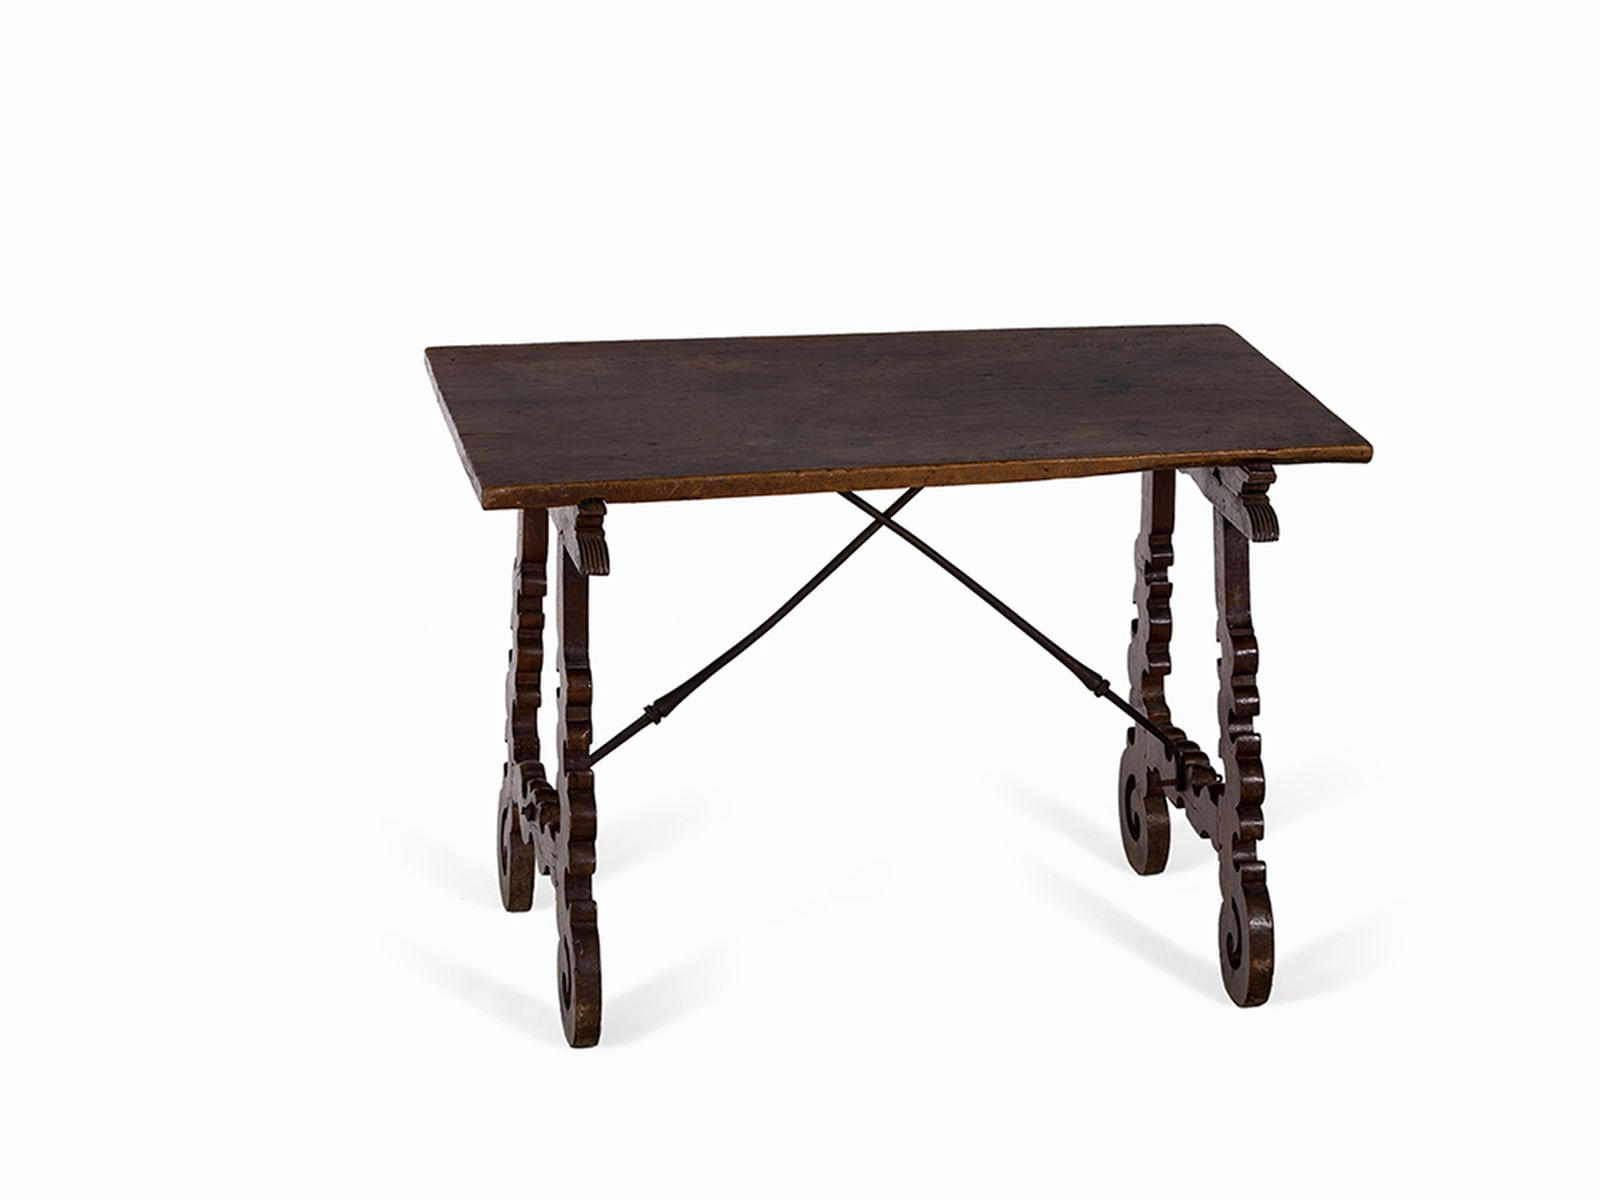 #103 Spanish Table of Solid Walnut, 17th C. | Spanischer Tisch aus Massivem Nussbaum, 17. Jh. Image